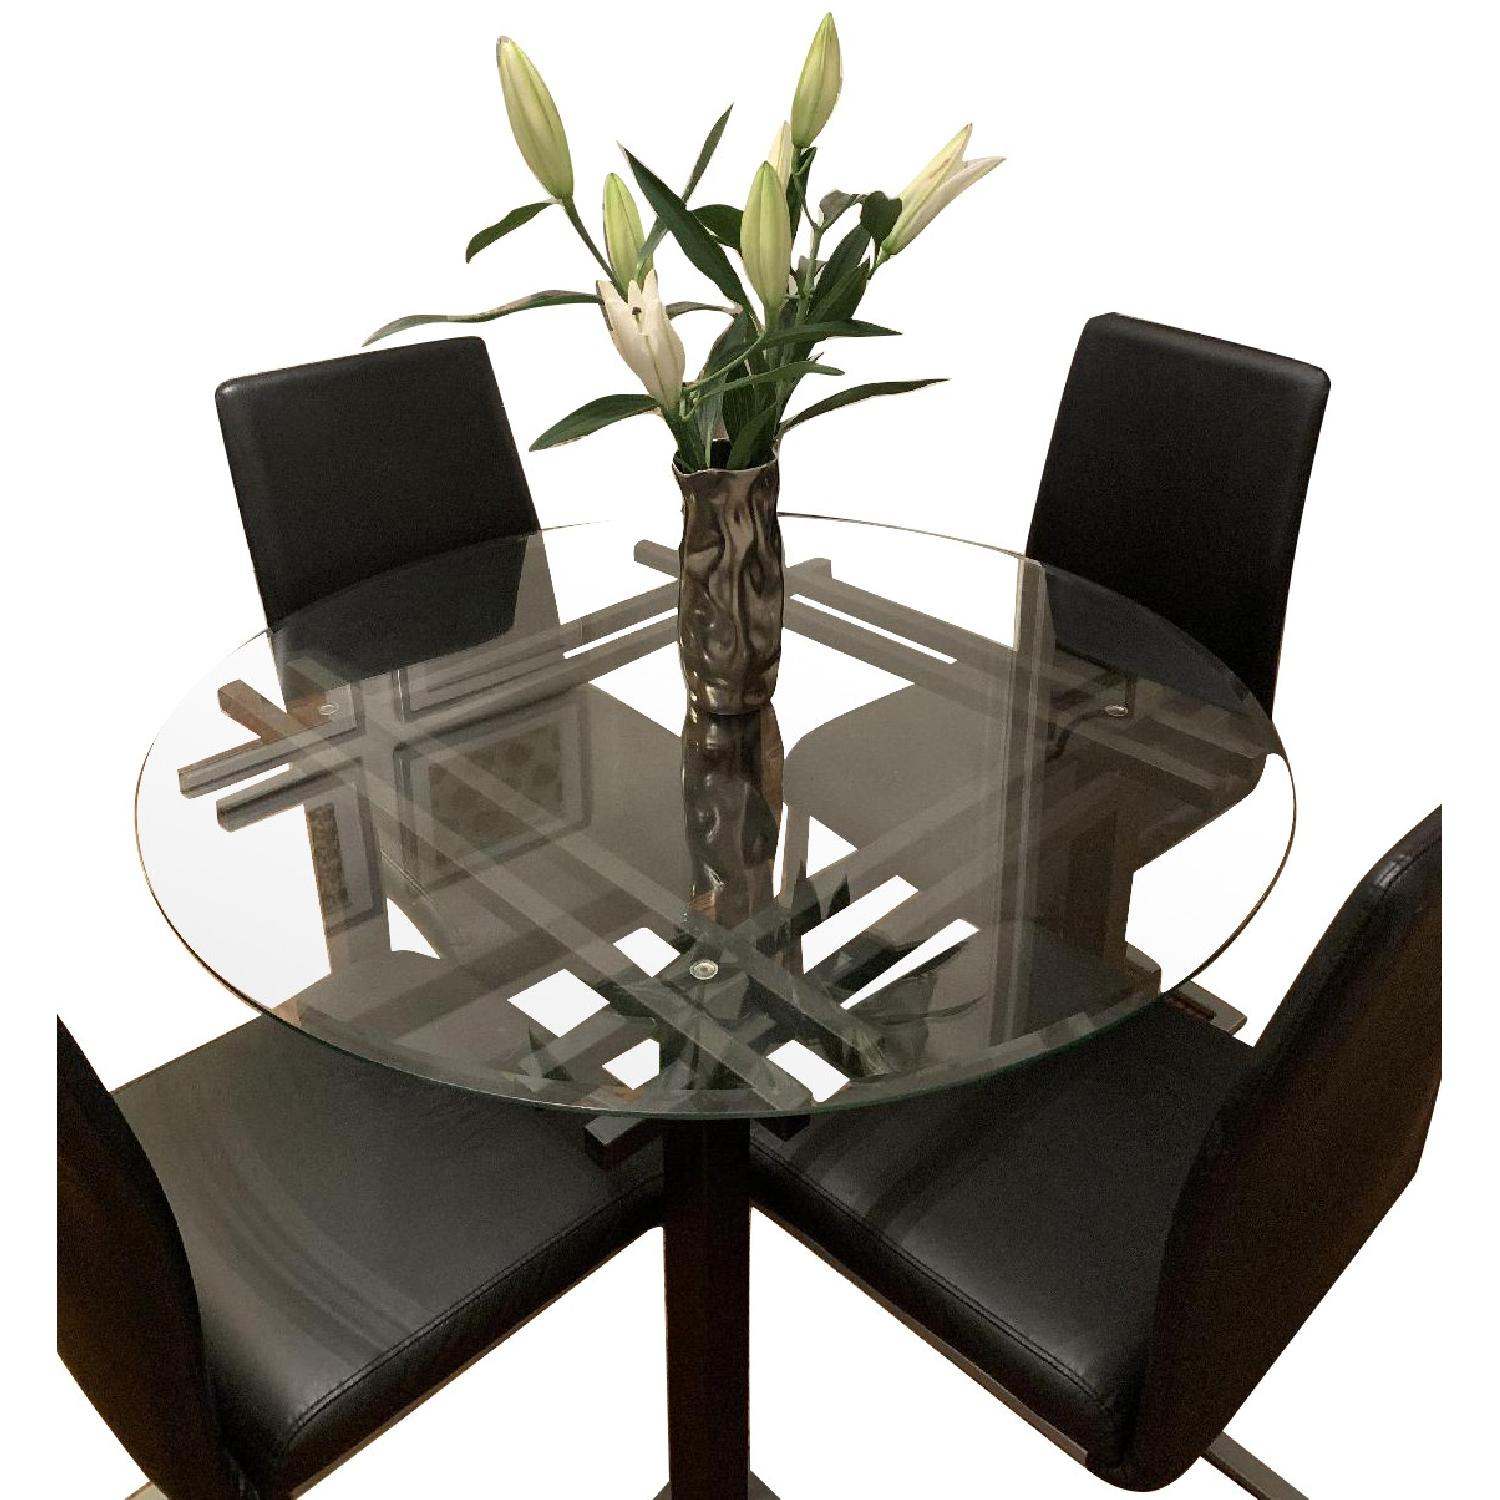 Modern Dining Table w/ 4 Chairs